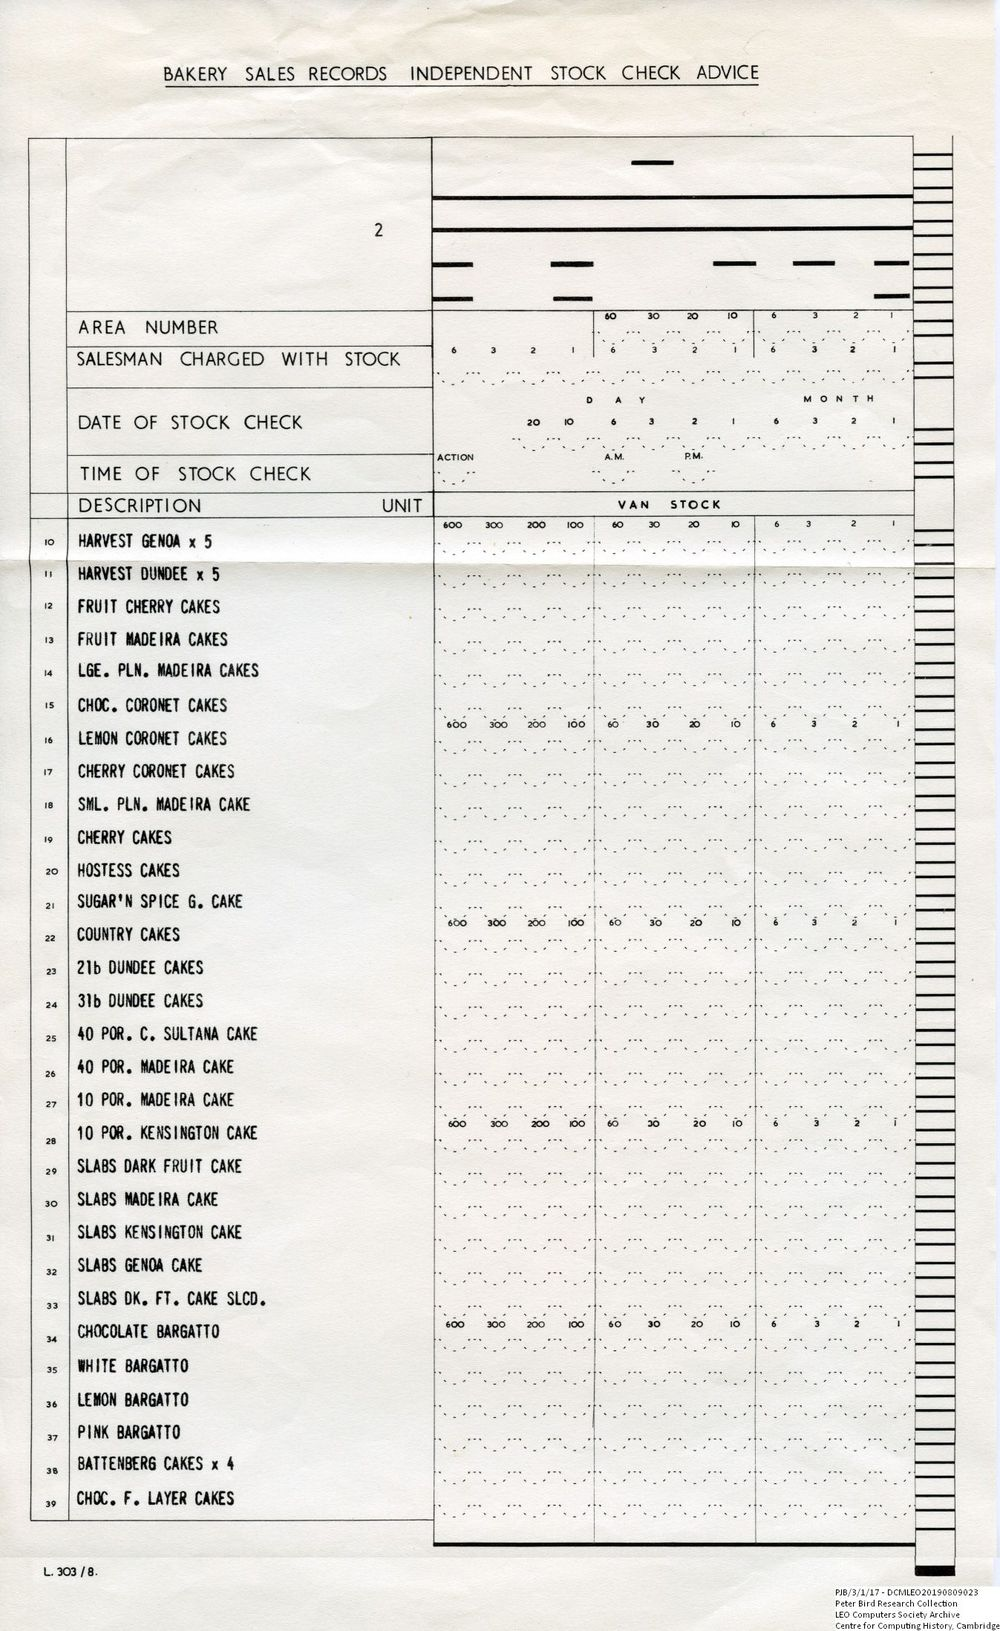 Scan of Document: 61009  Autolector Bakery Van Stock Check Form